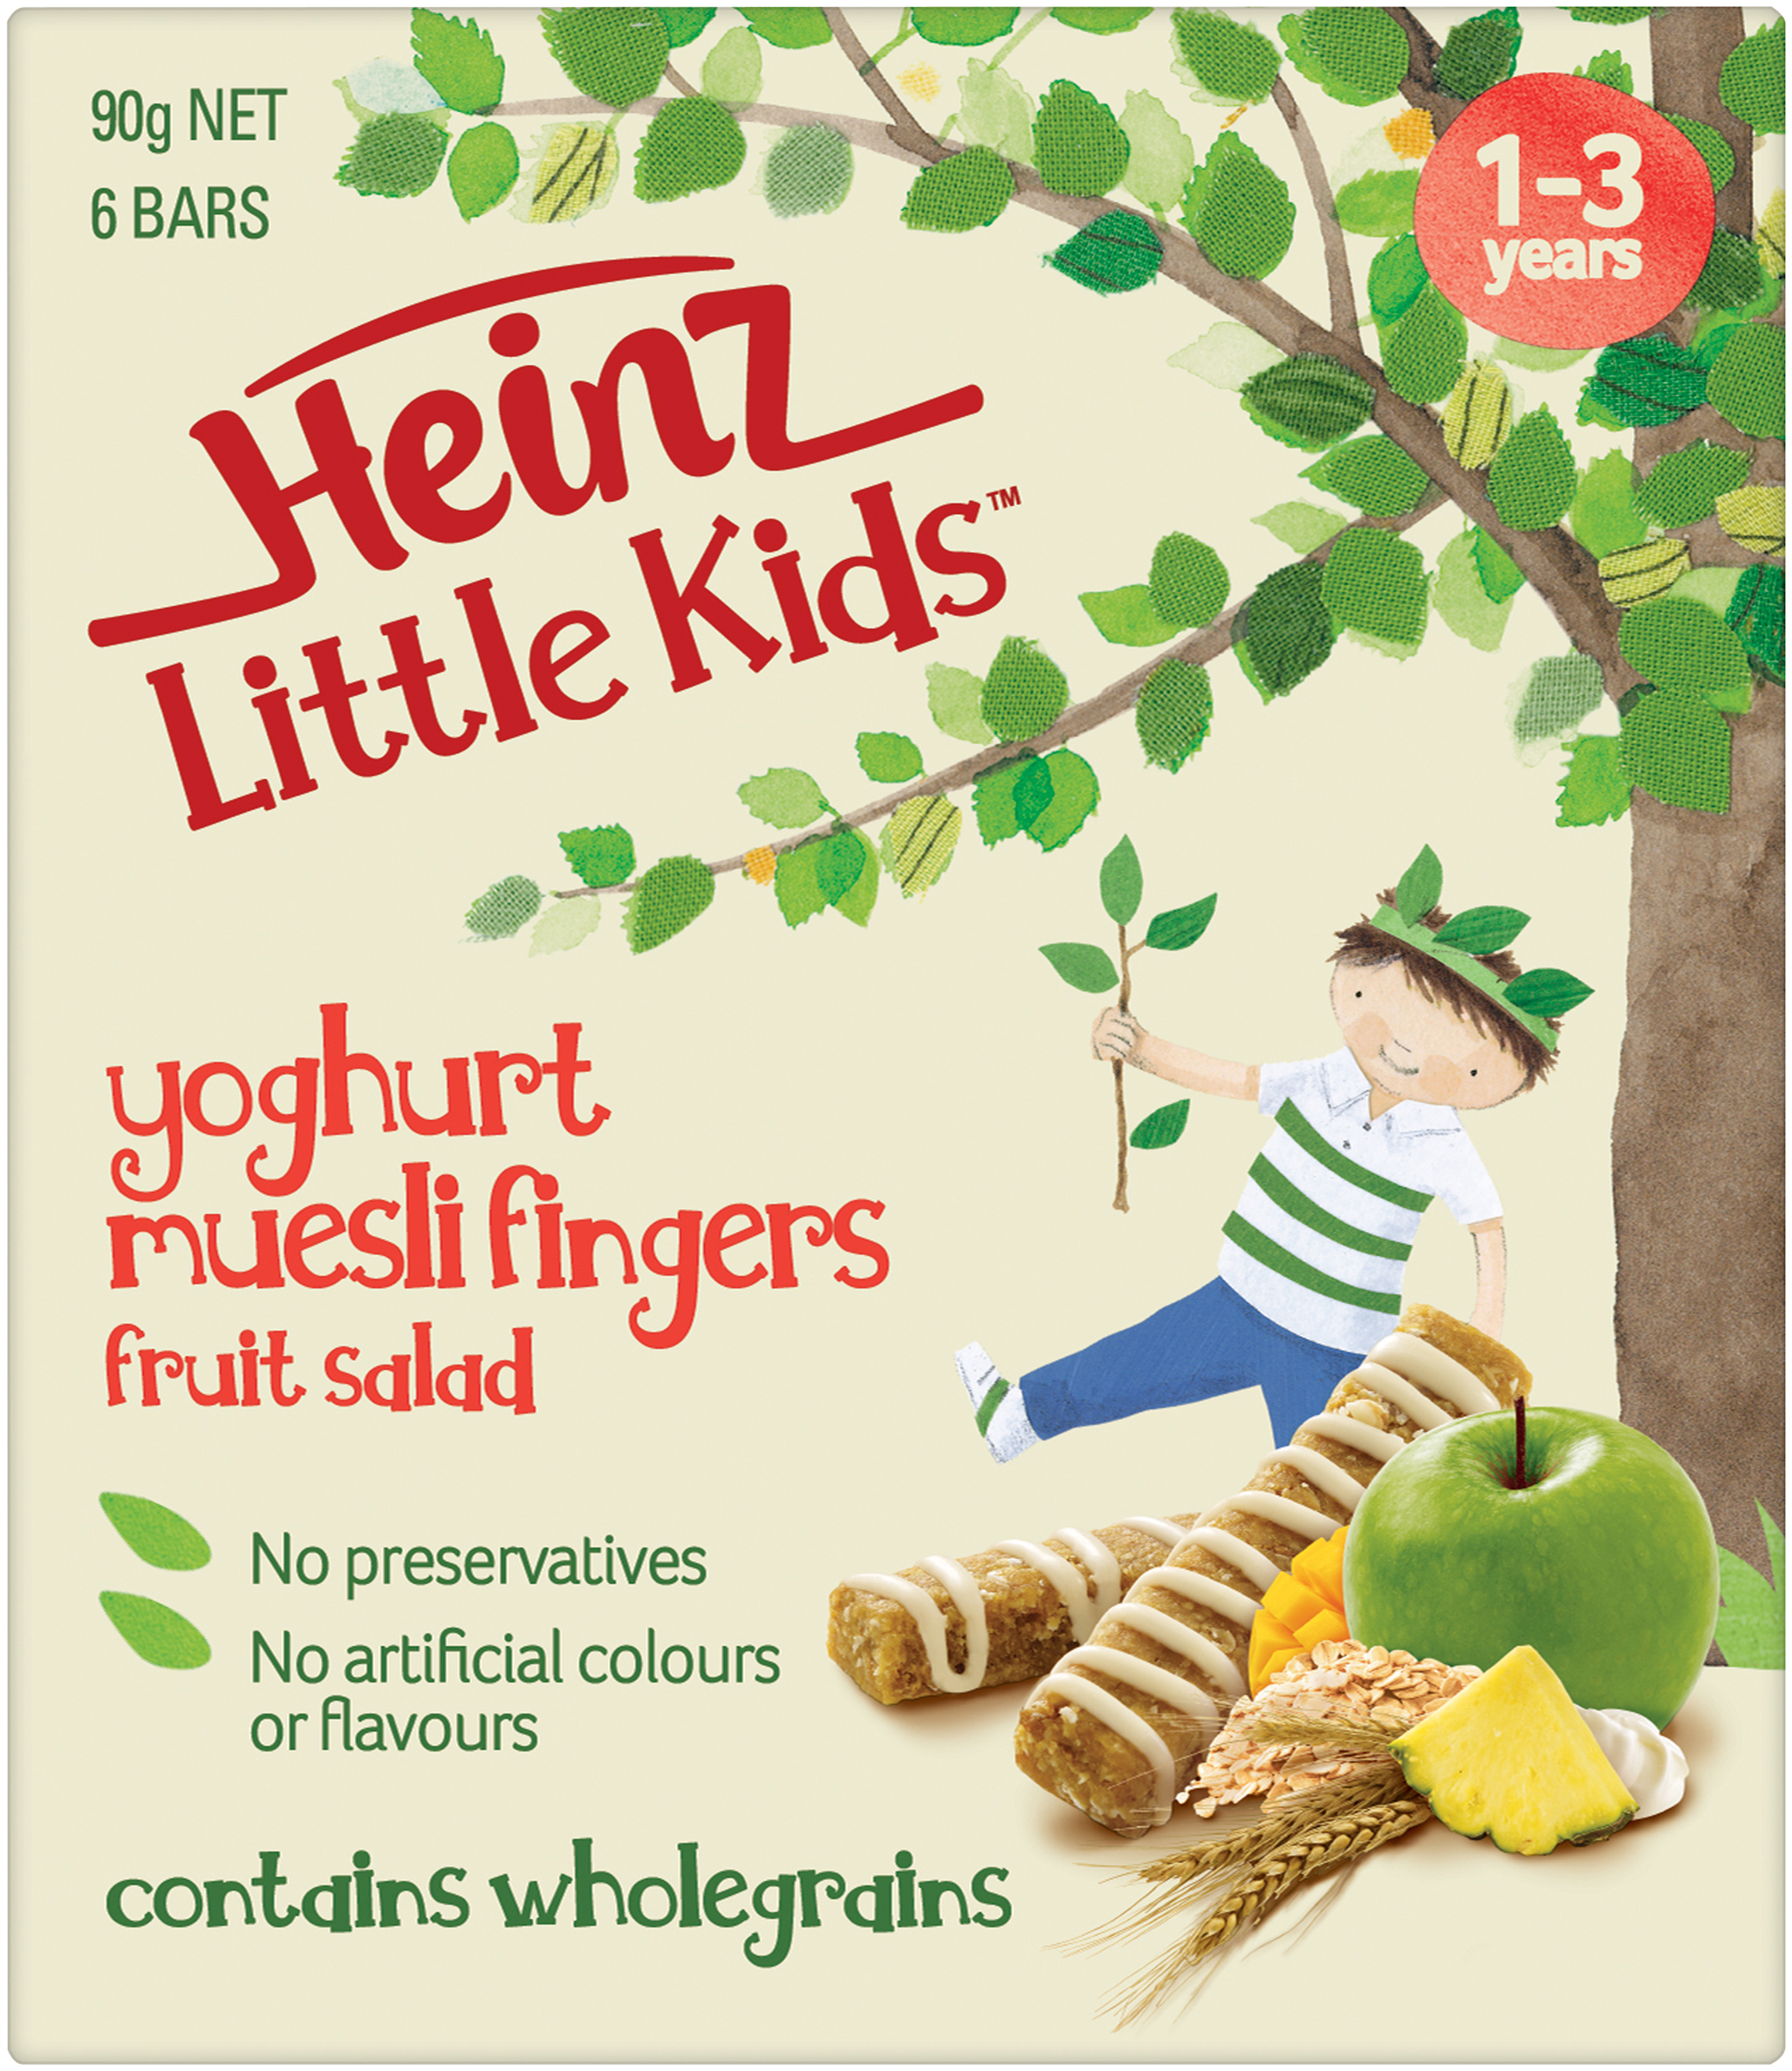 Heinz Little Kids Fruit Salad Yoghurt Muesli Fingers